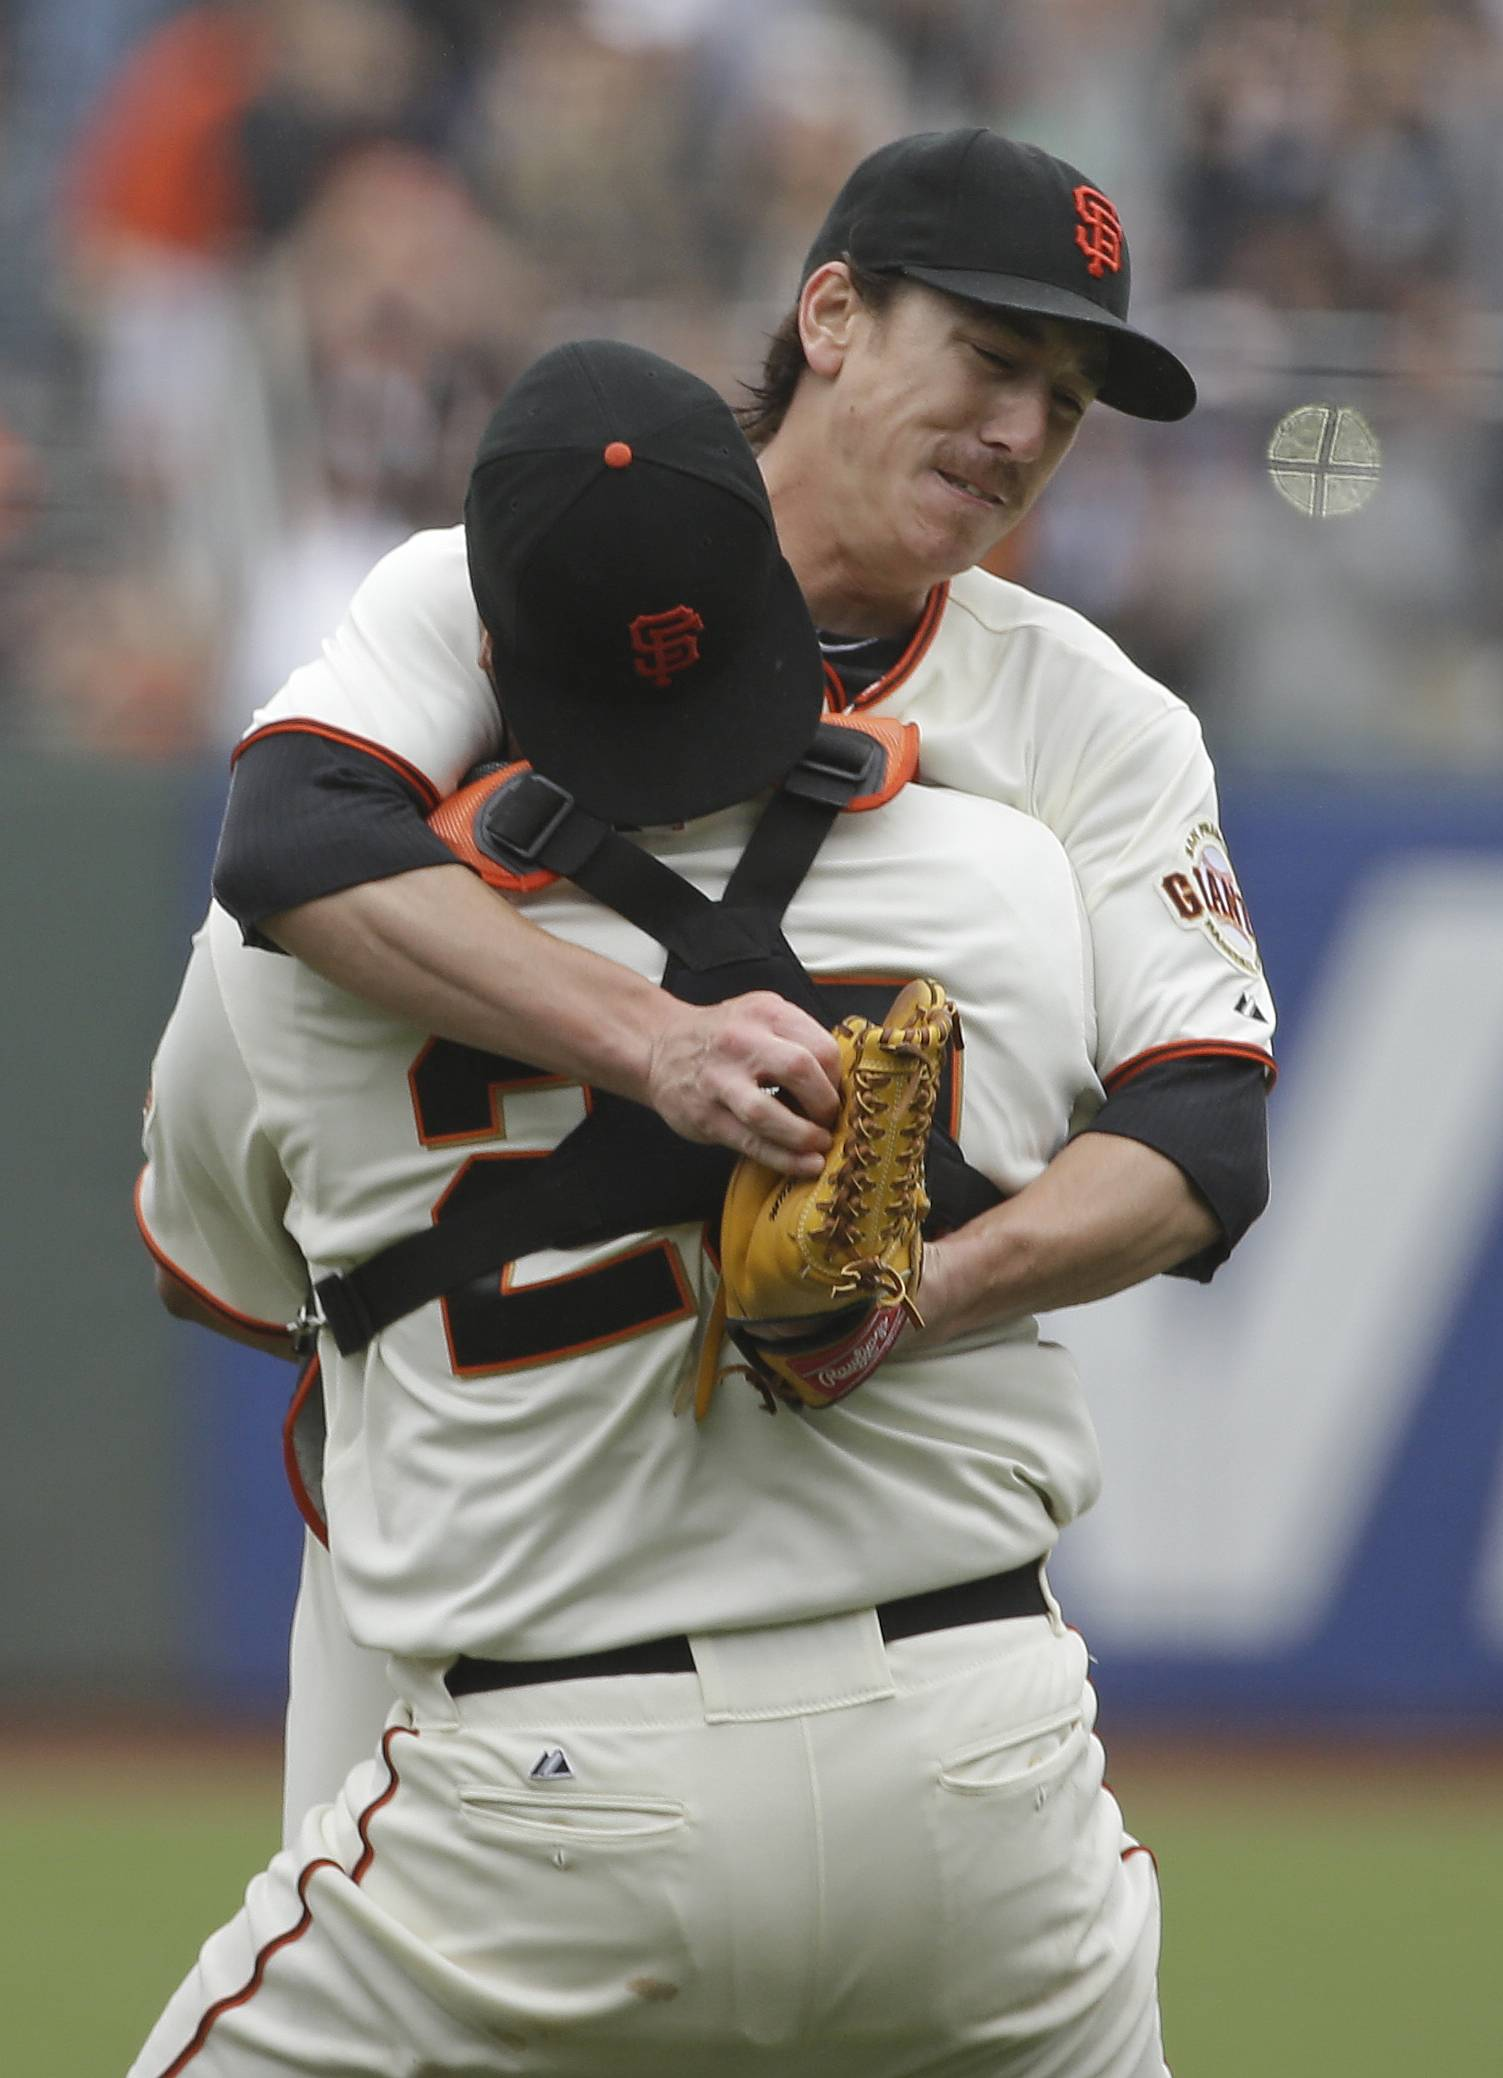 San Francisco Giants pitcher Tim Lincecum is embraced by catcher Hector Sanchez after throwing a no-hitter against the San Diego Padres on Wednesday. Lincecum threw his second career no-hitter. San Francisco won 4-0.